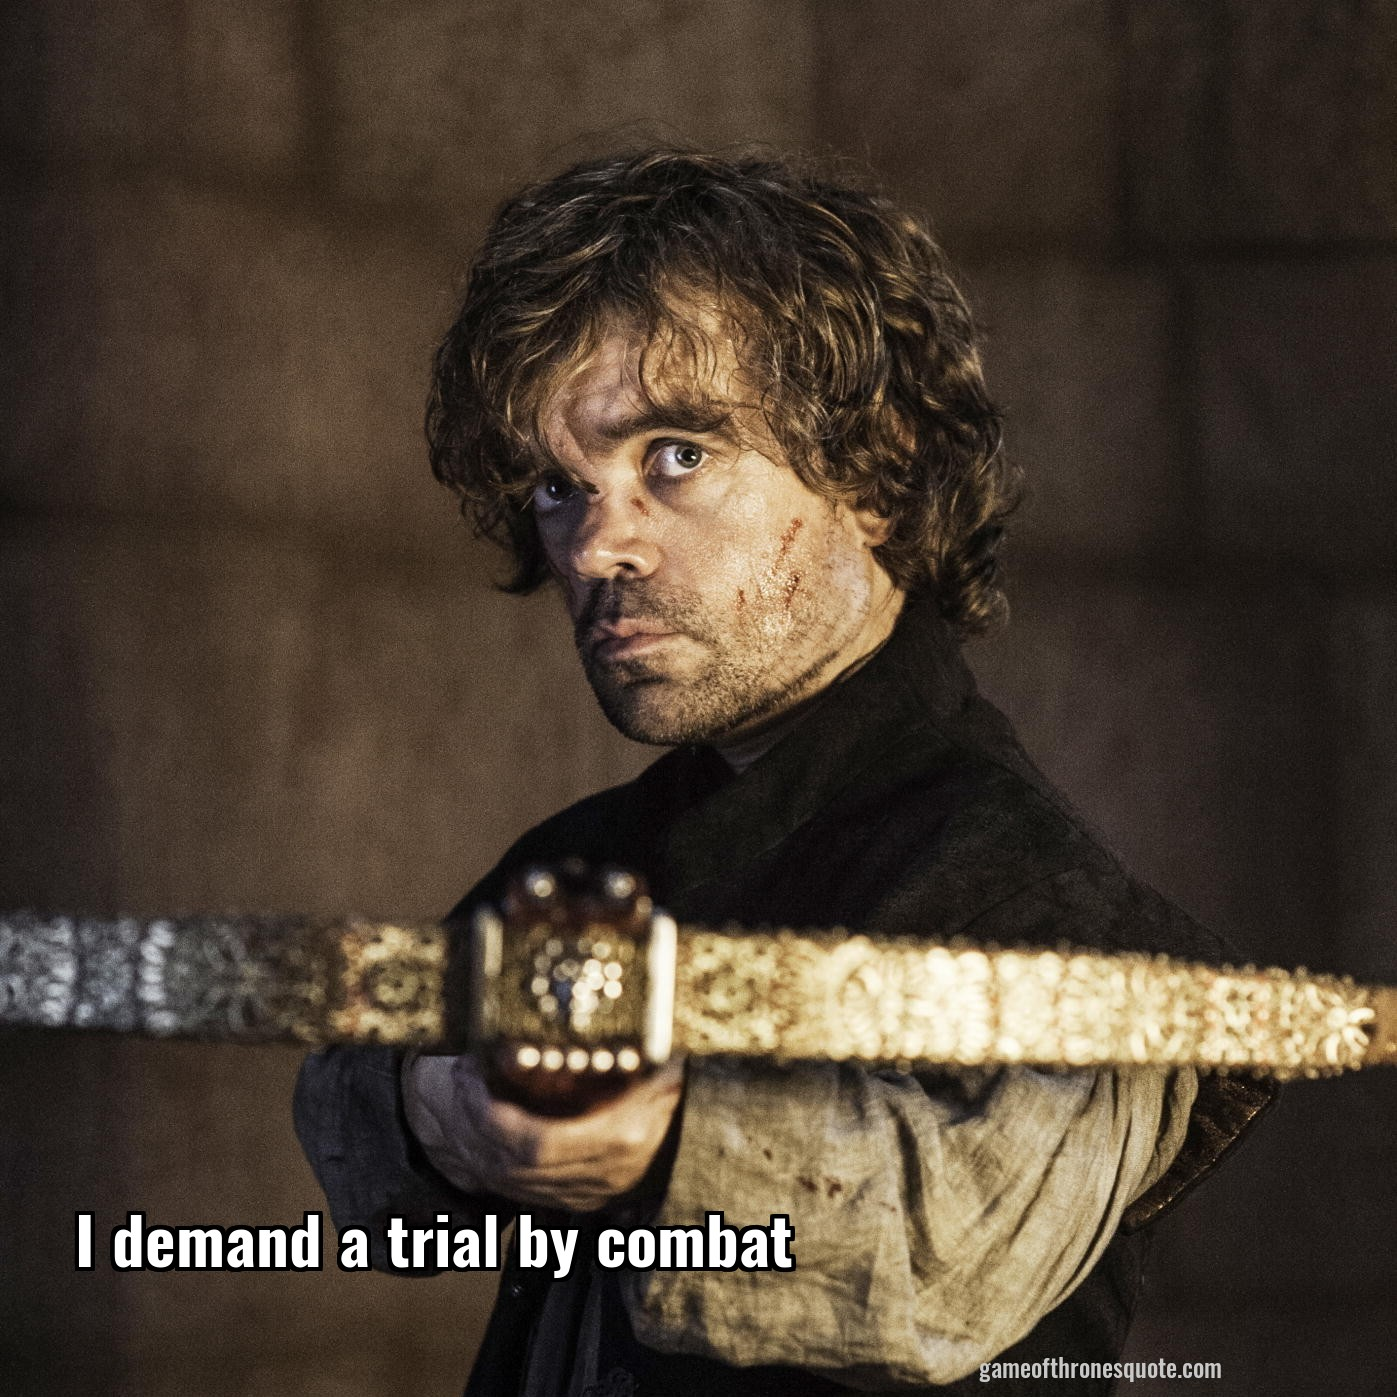 tyrion lannister i demand a trial by combat game of